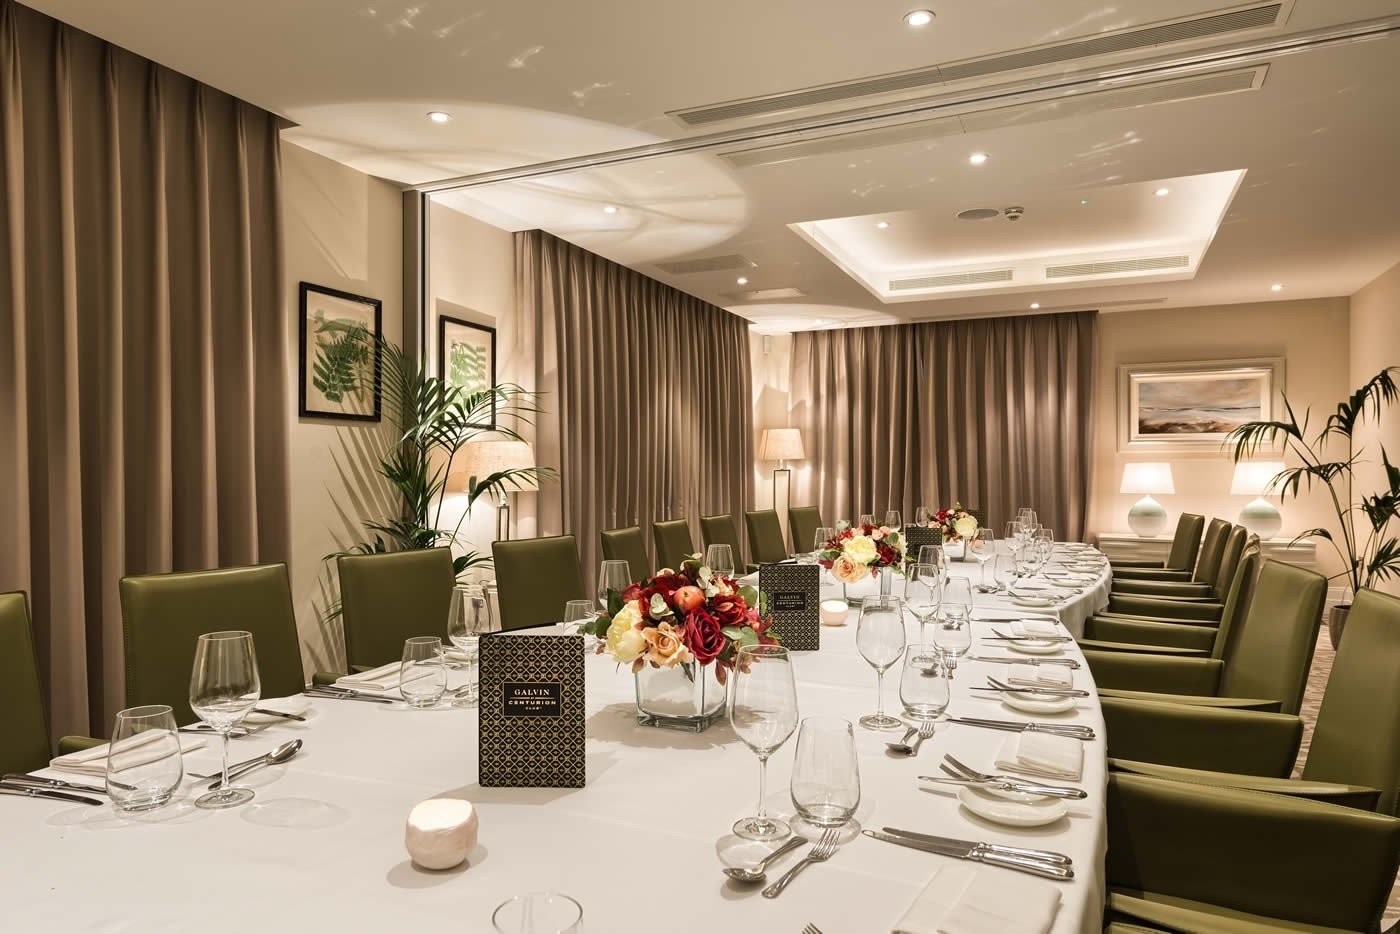 Private dining St Albans Hemel Hempstead Hertfordshire, three private rooms seating up to 50 people are available to entertain friends or business associates